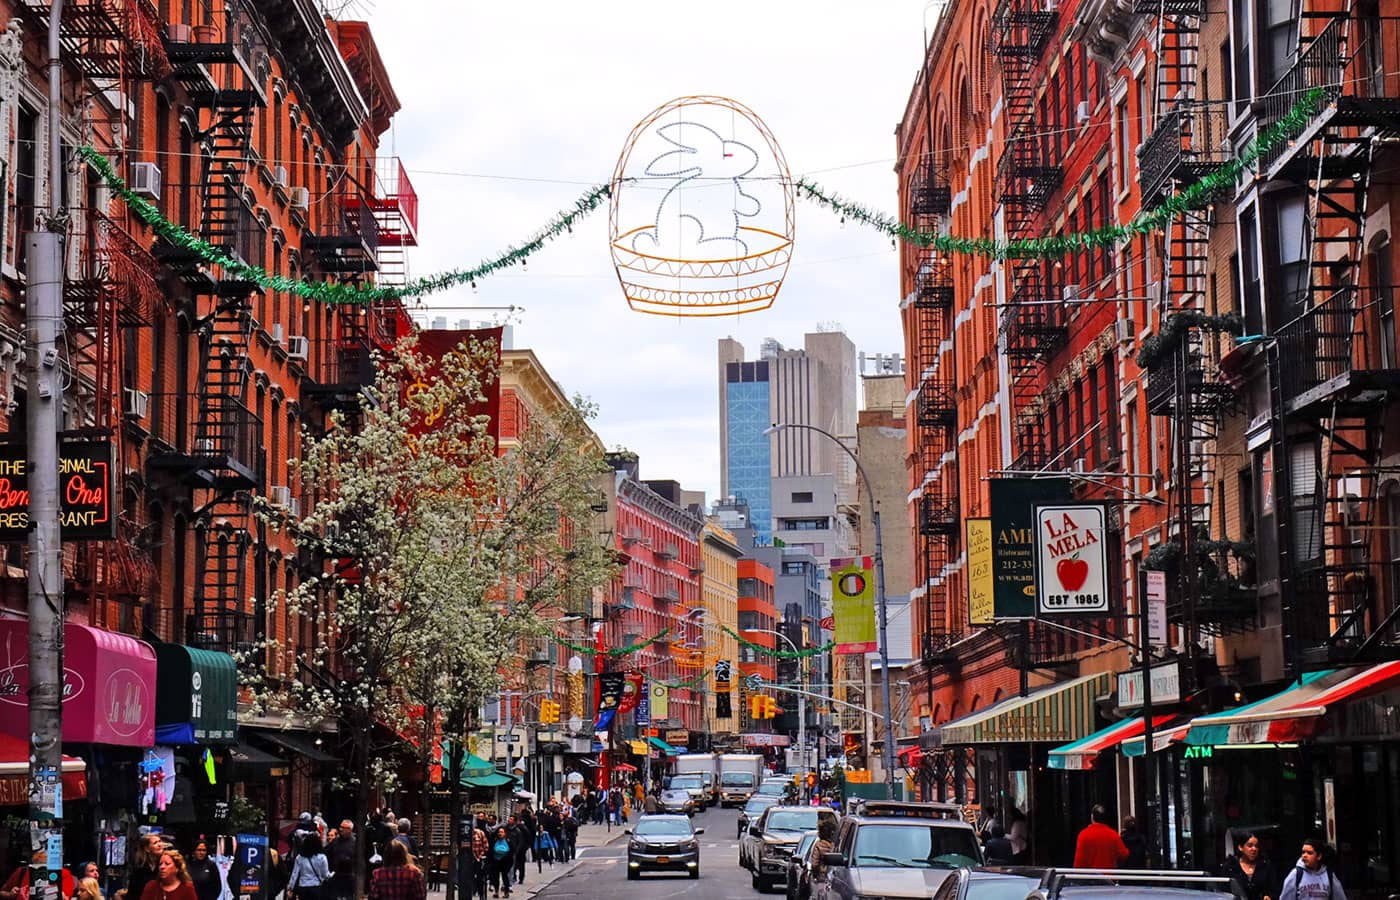 Ostern in New York - Little Italy